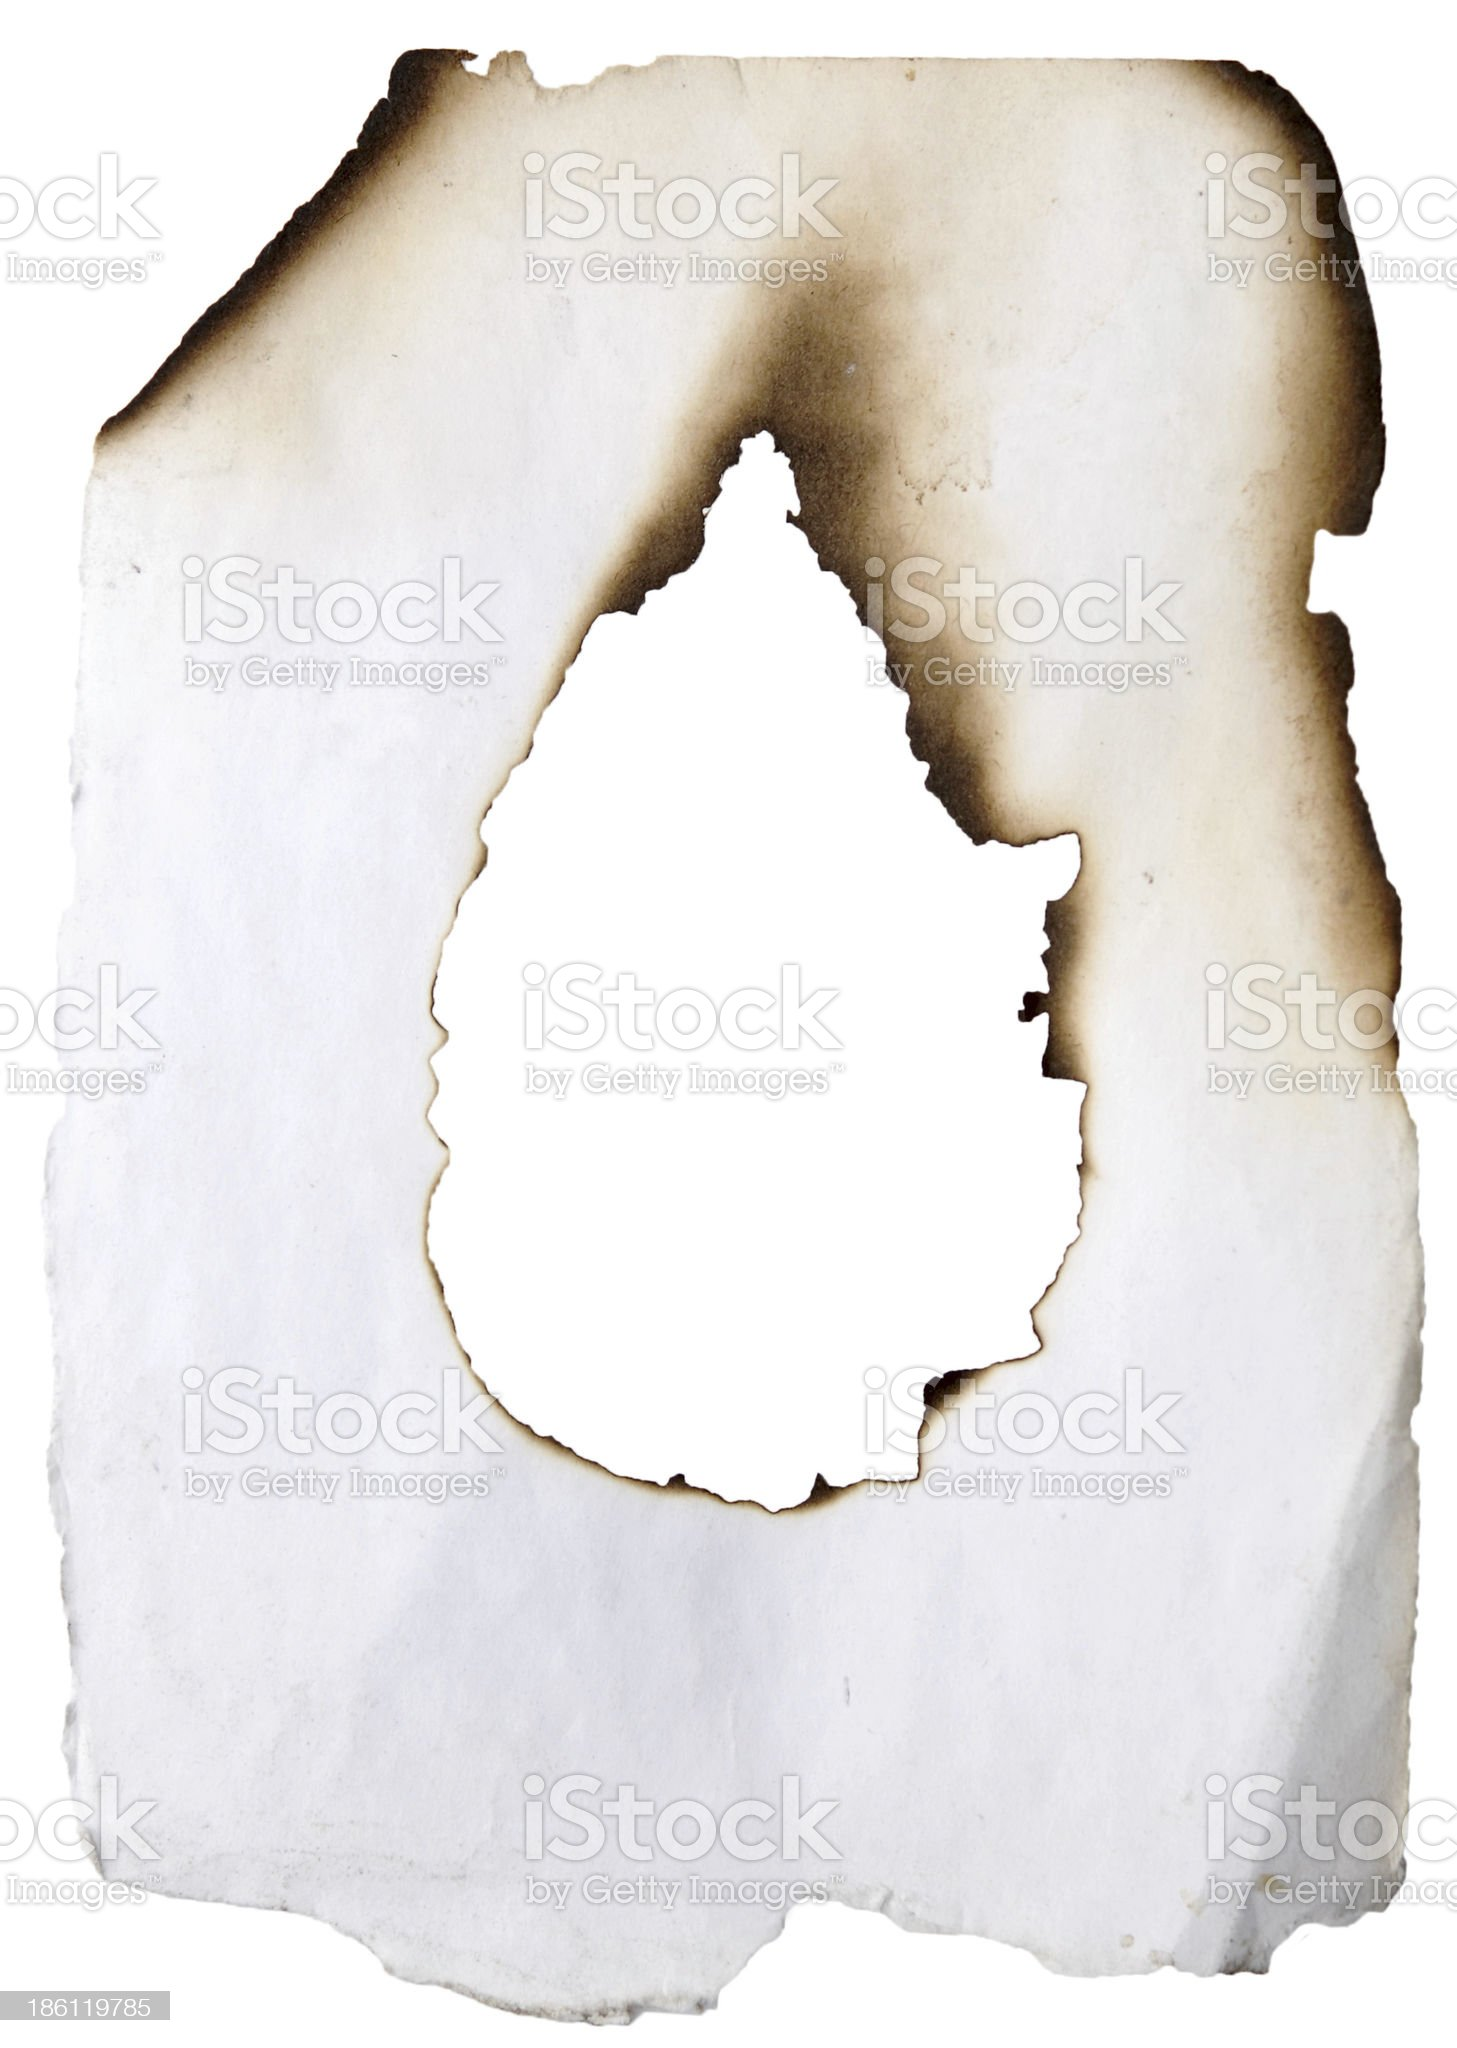 burnt hole royalty-free stock photo